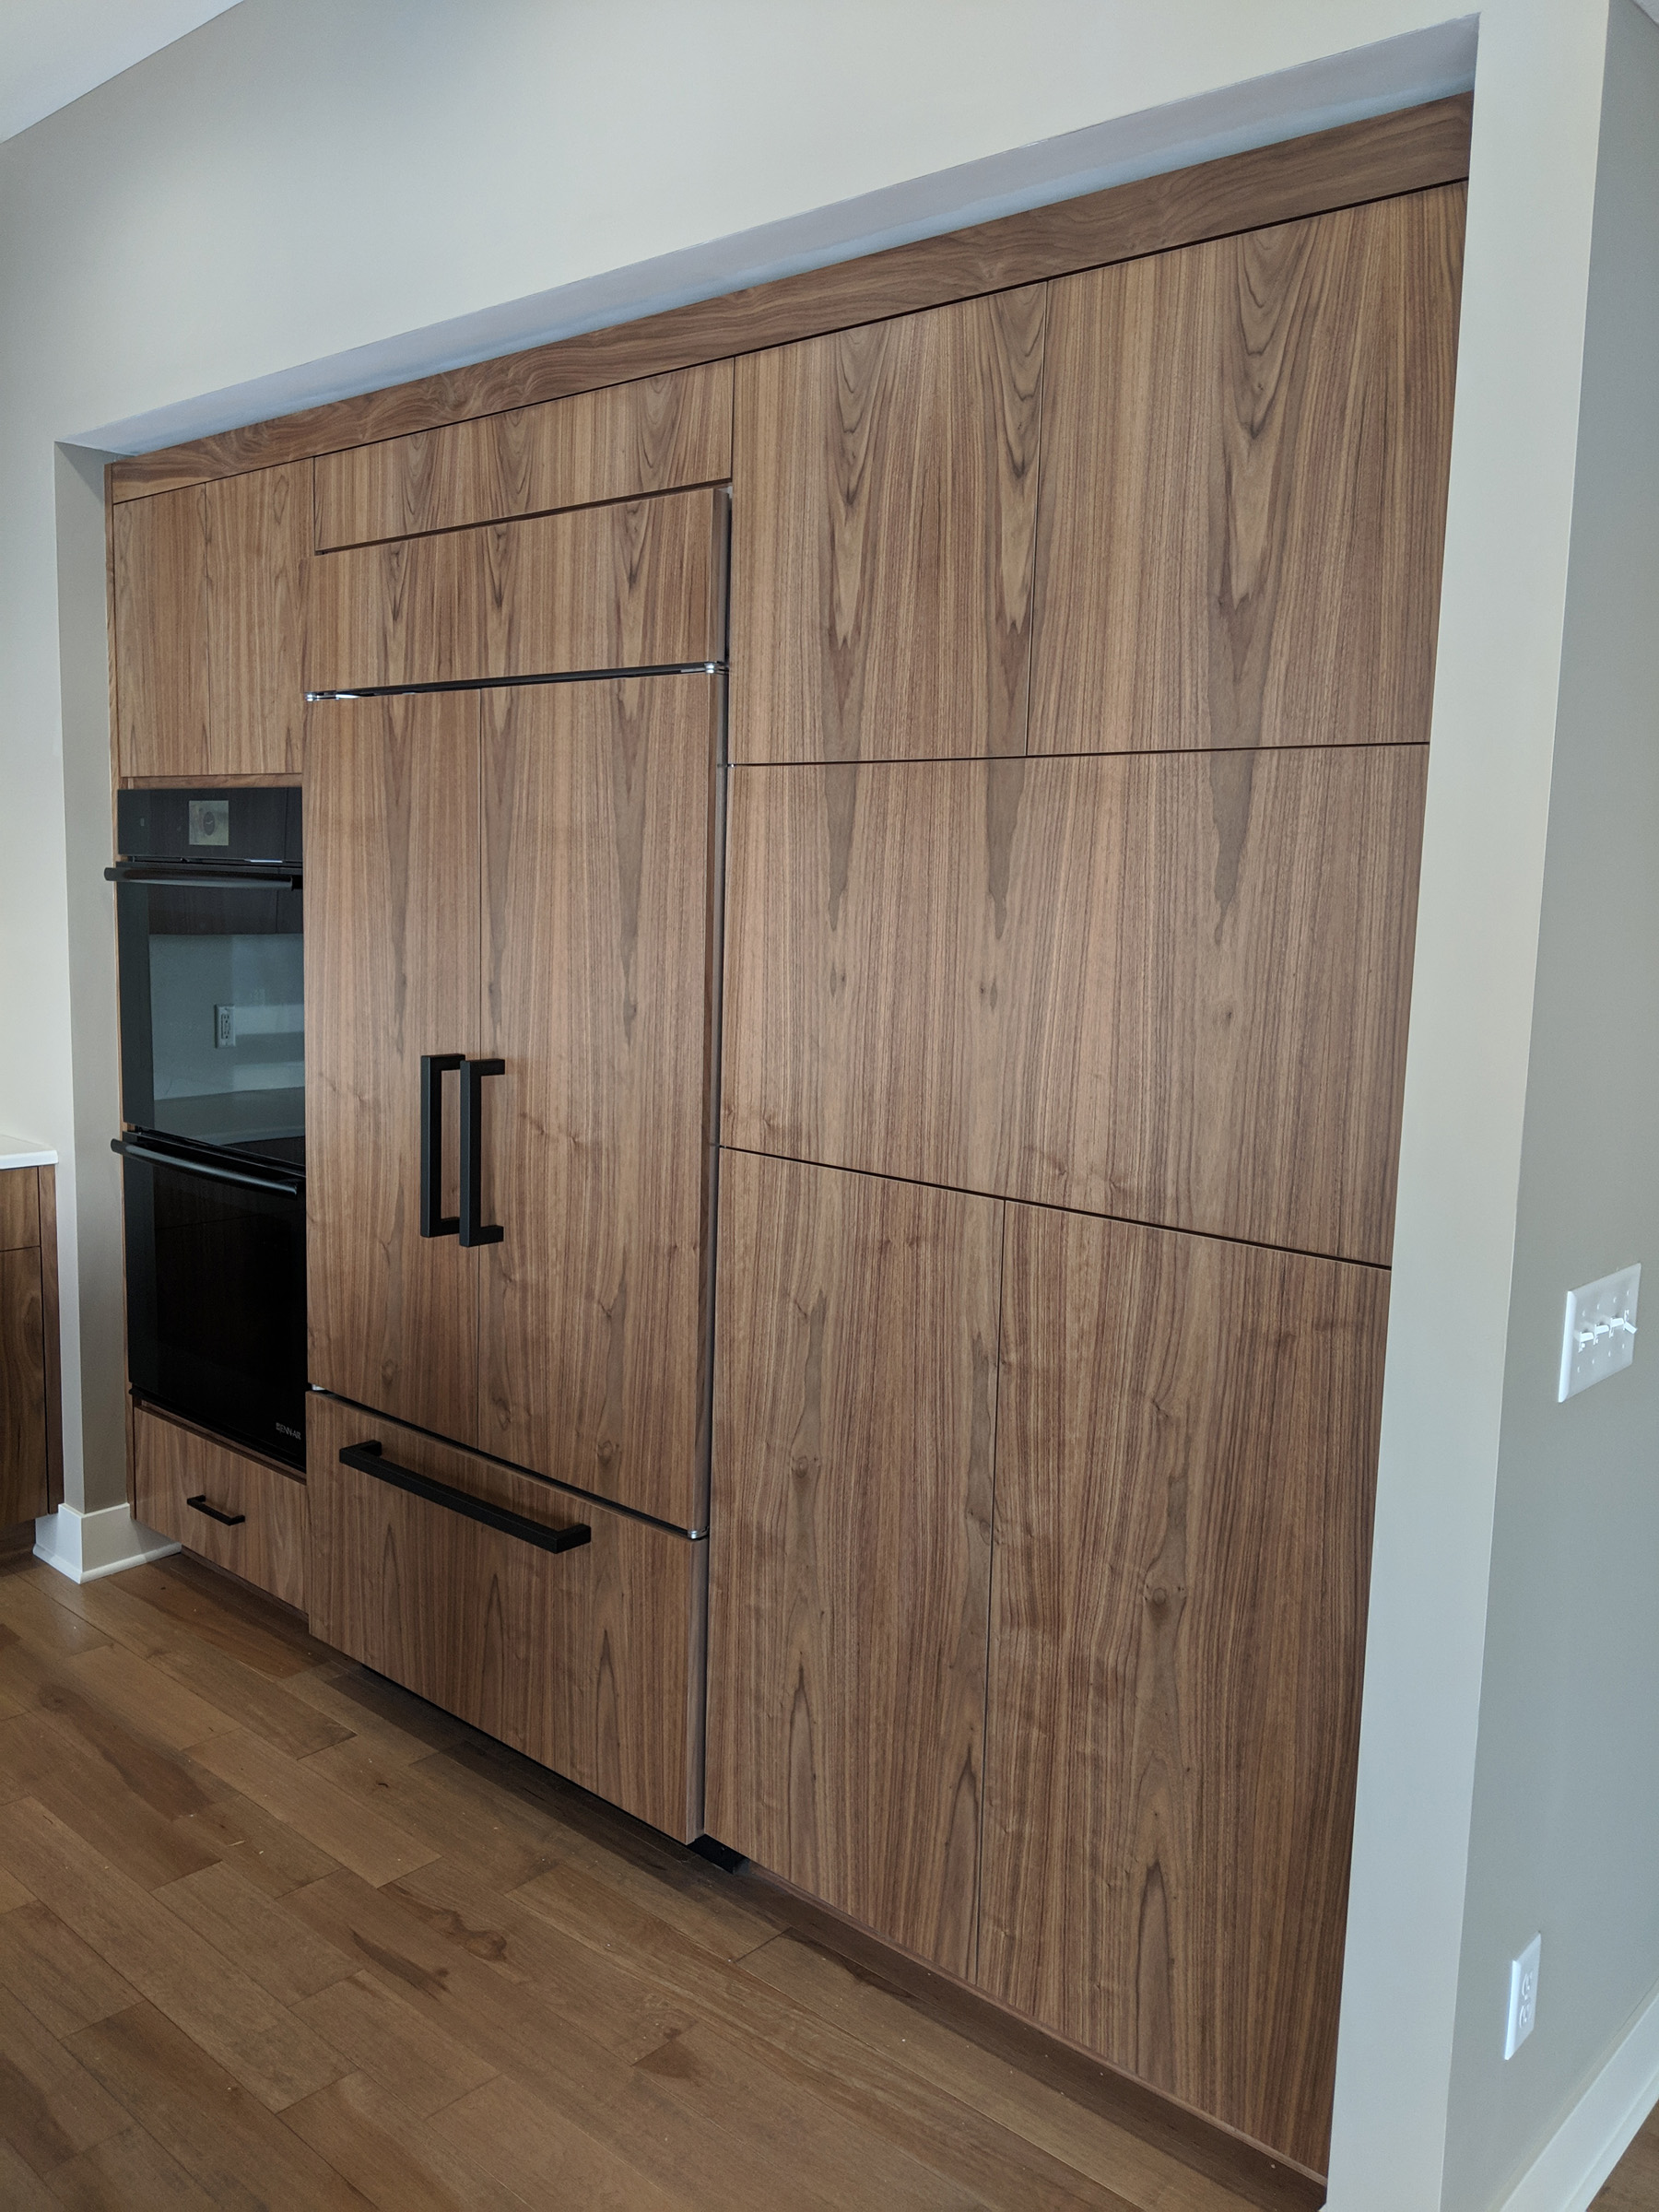 Paneled fridge and freezer